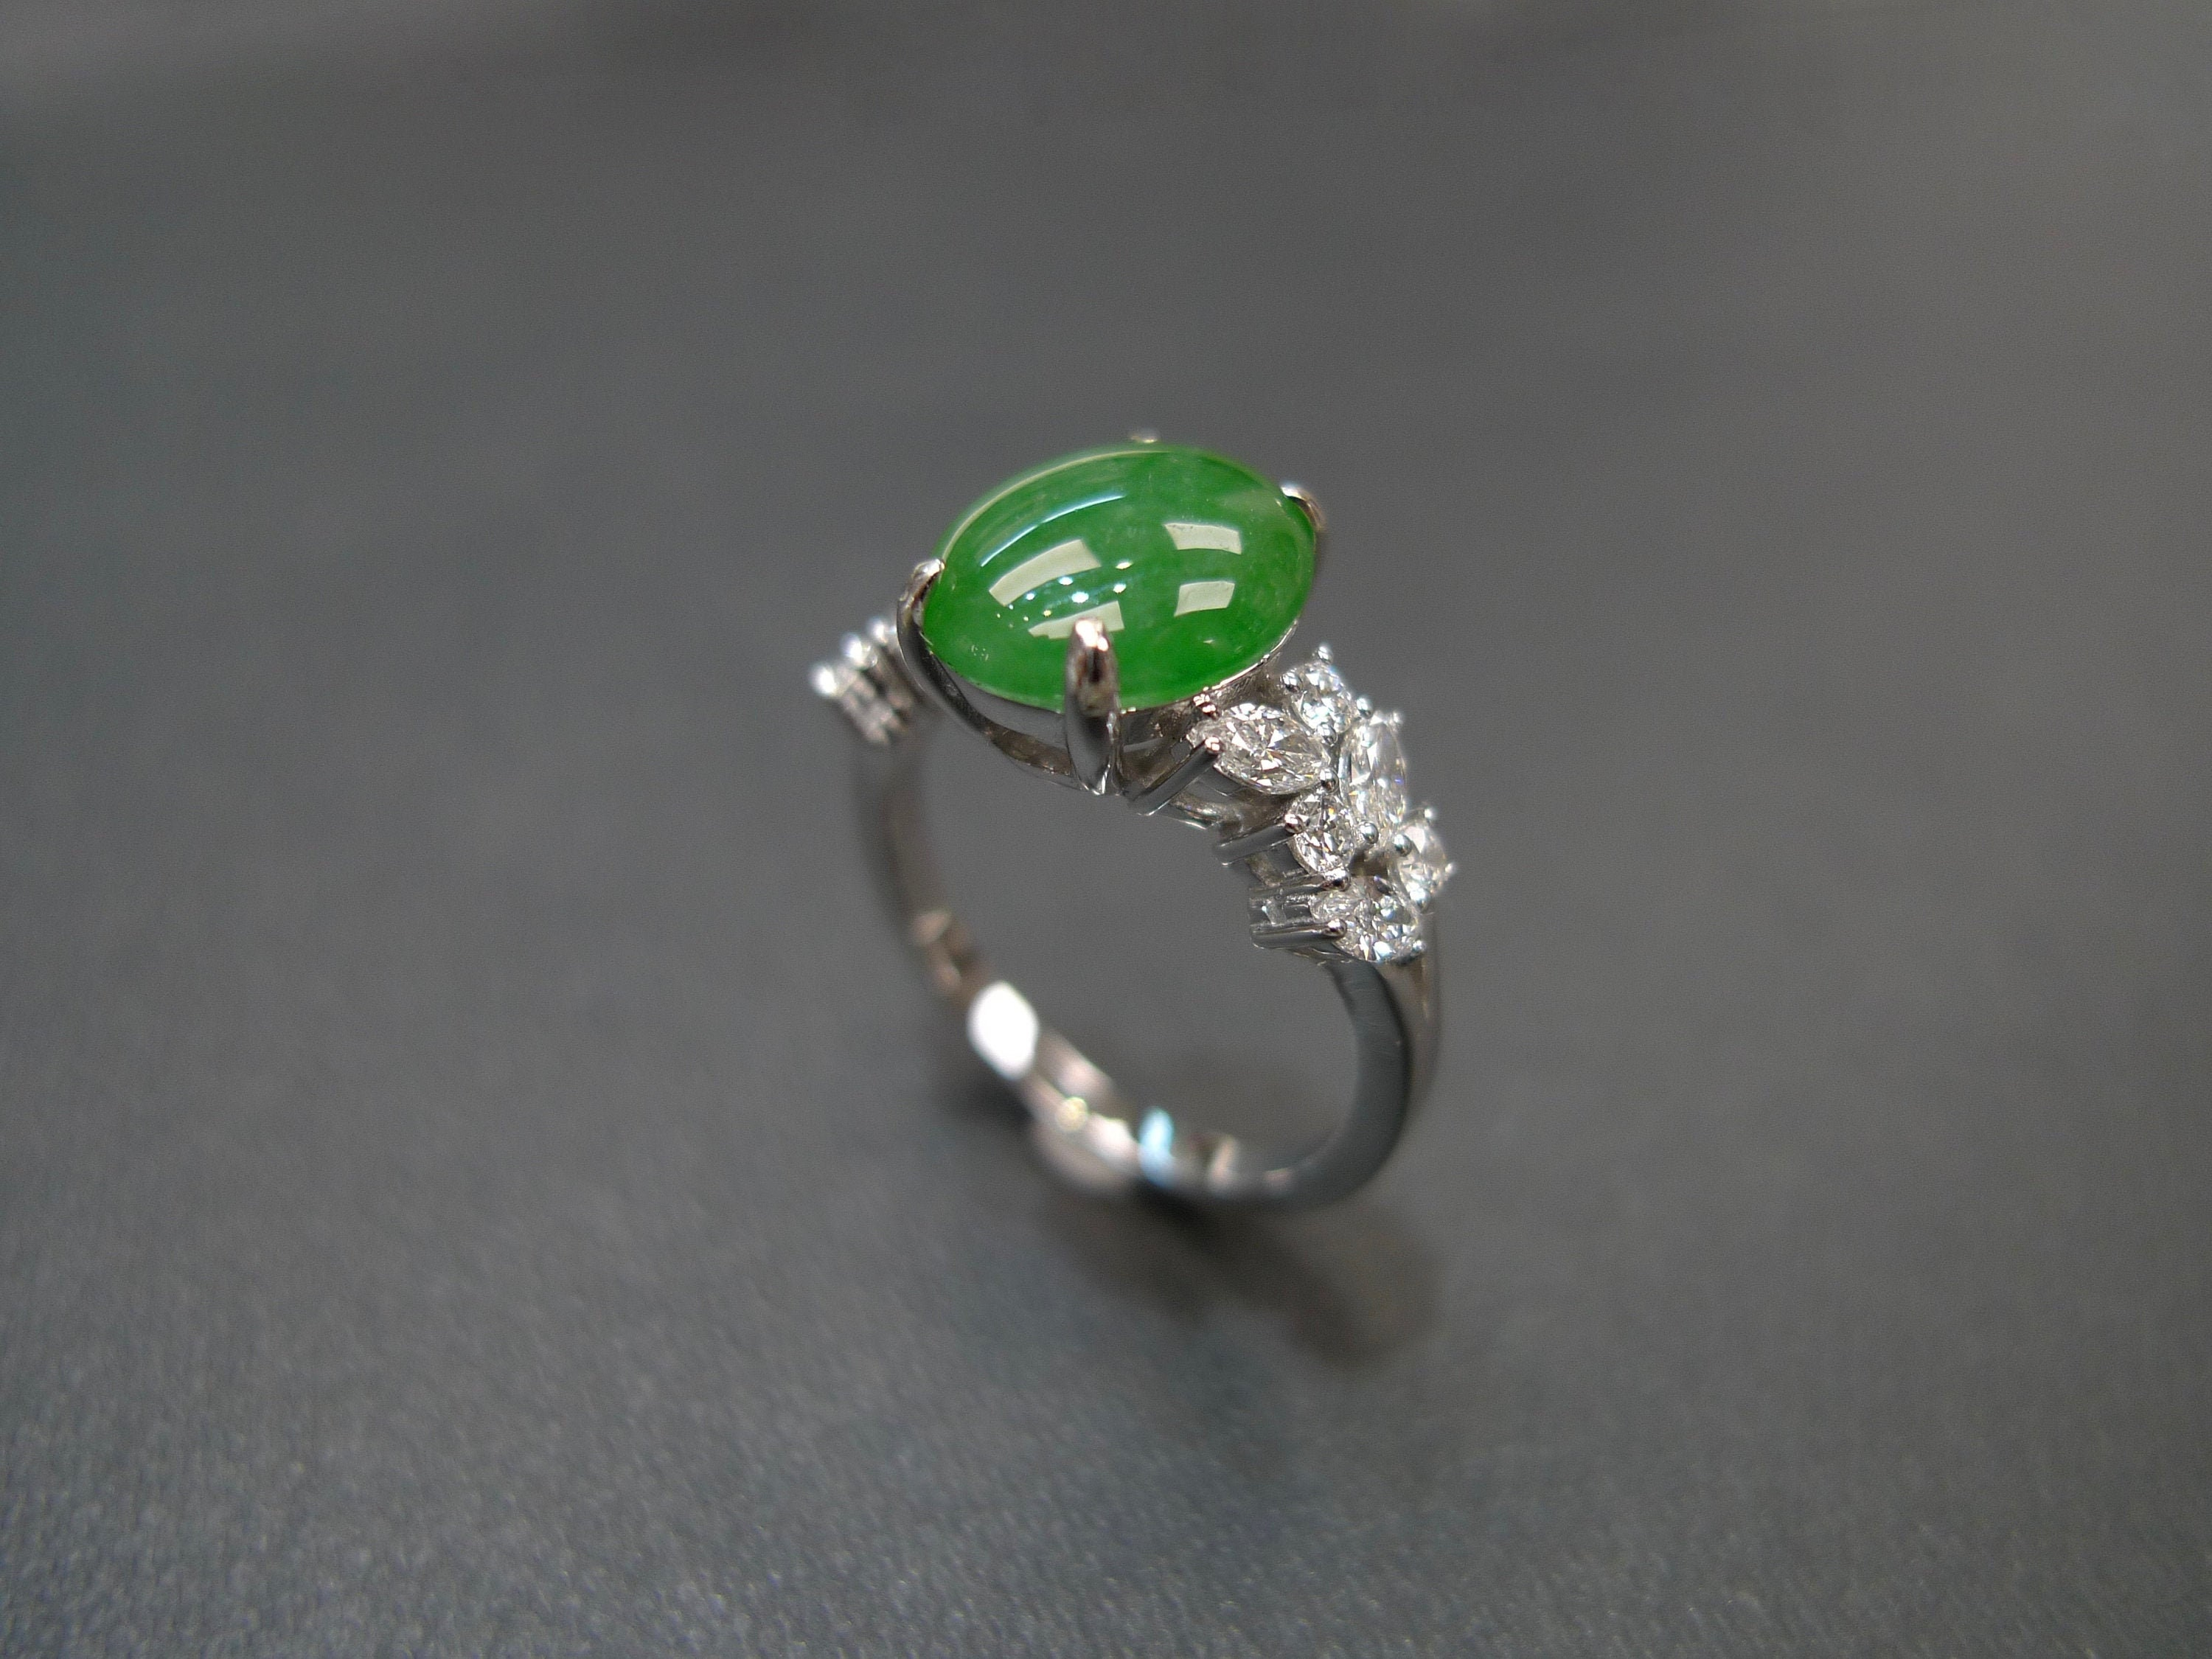 acb65d14156c2 Oval Shape Natural Green Jade with Marquise Diamond Engagement Ring in 14K  White Gold